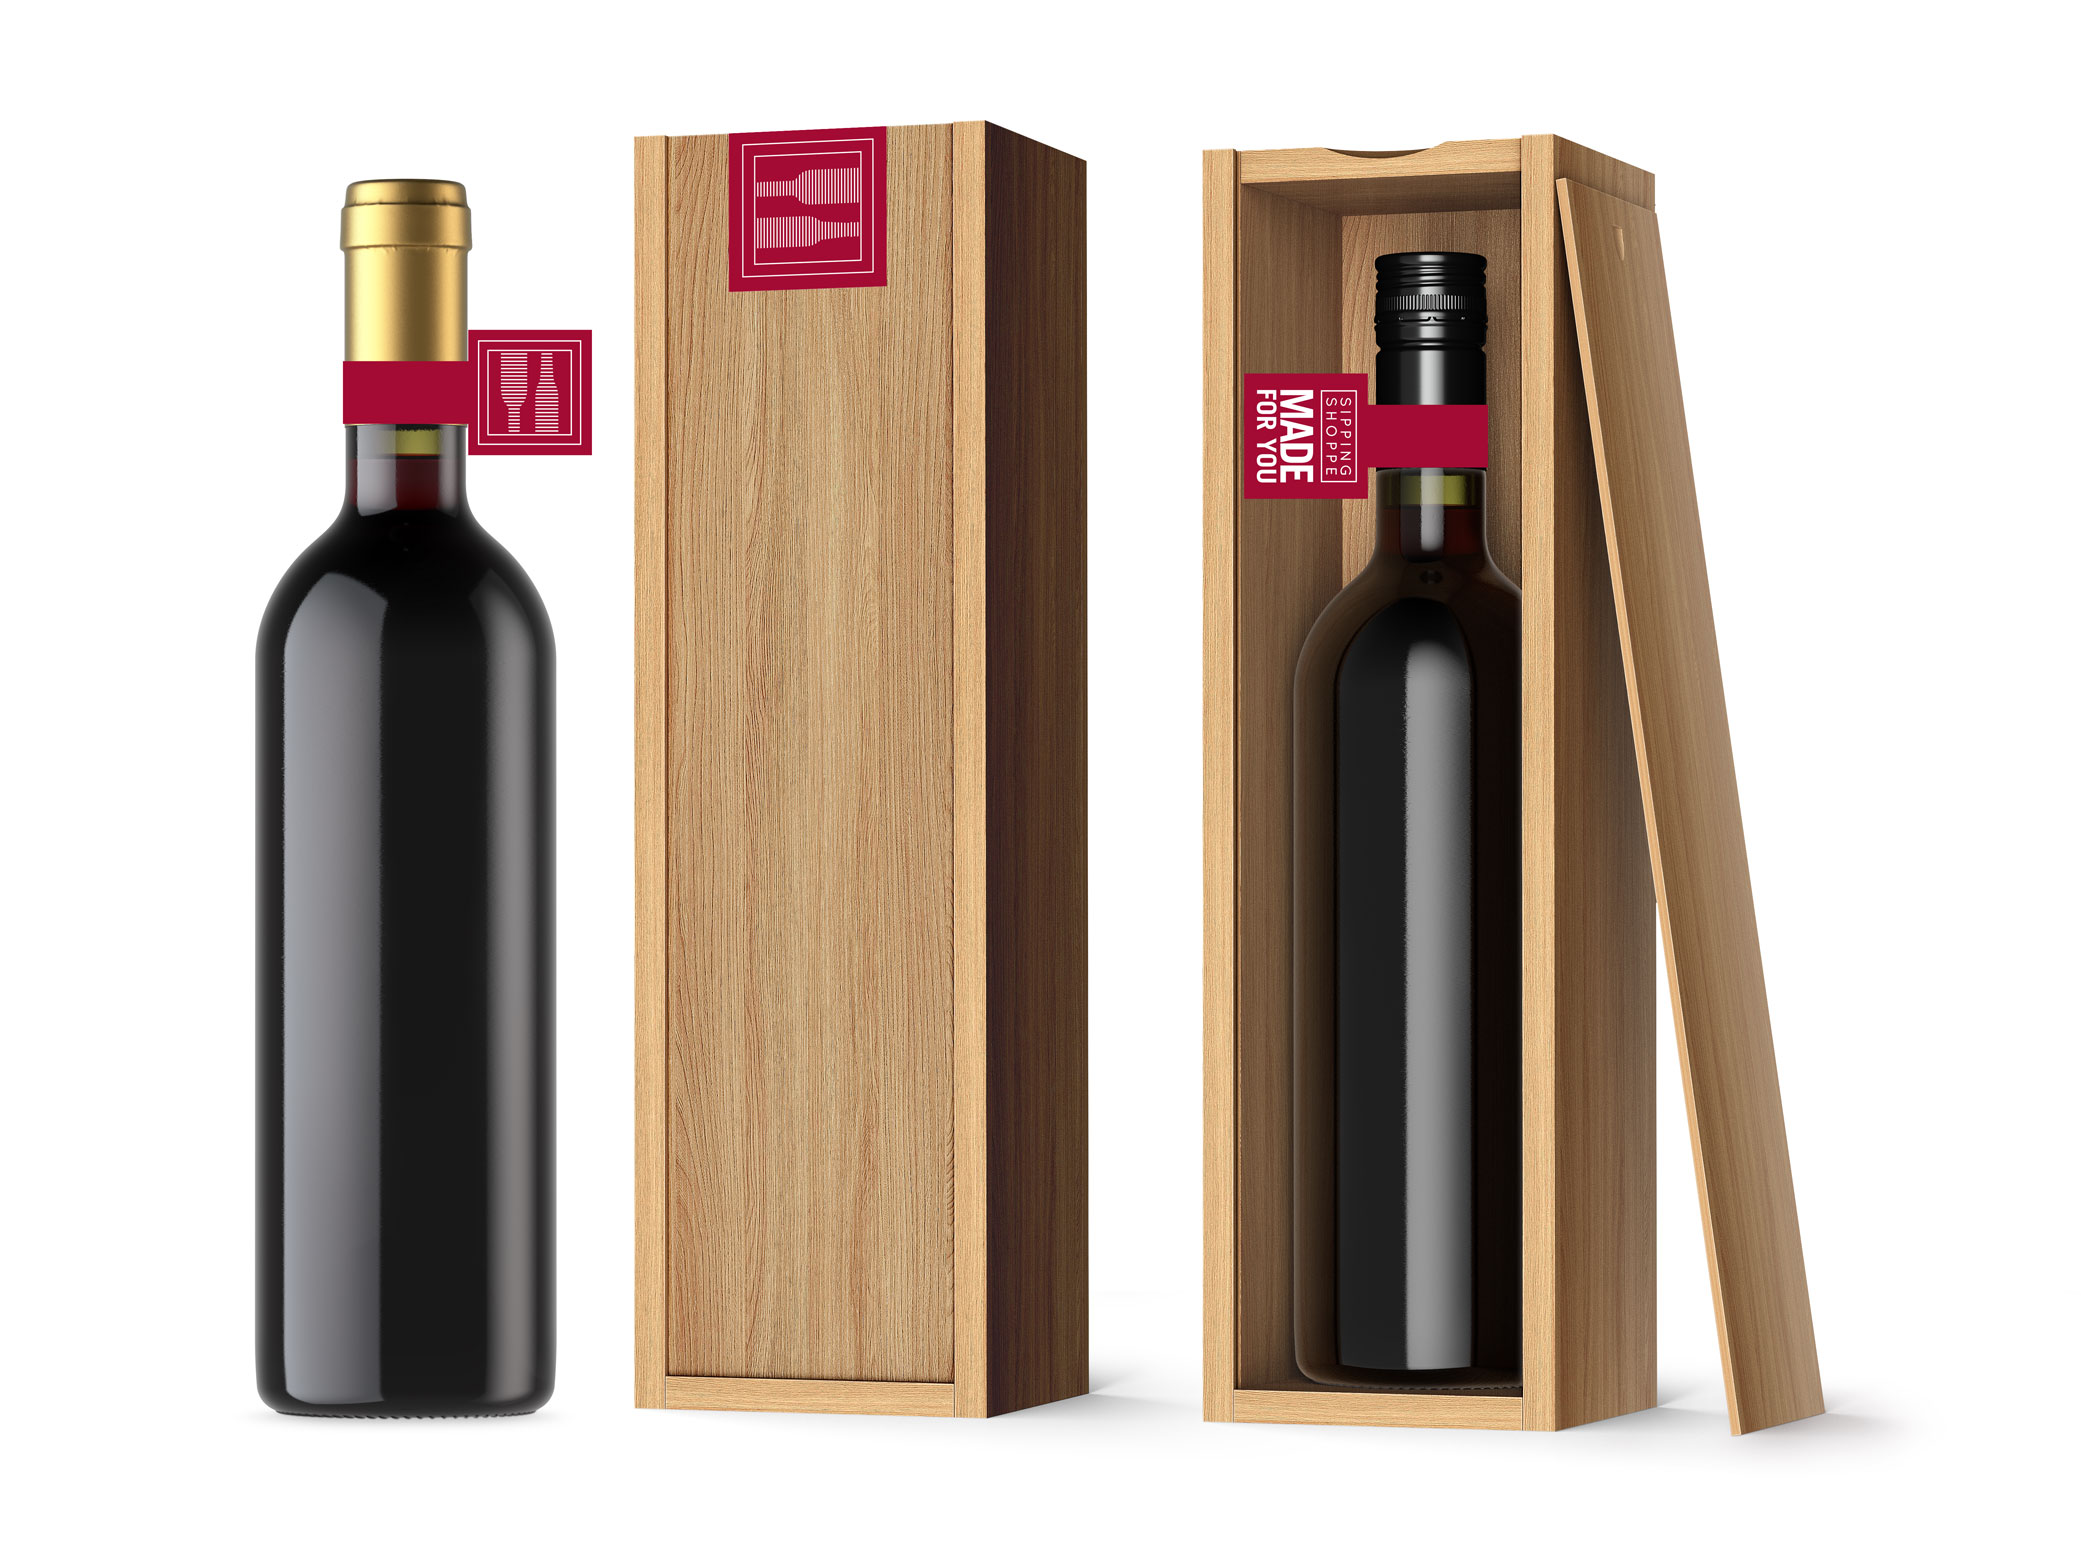 Sipping Shoppe wine package design showing customizable wooden box with burgundy hangtags and the tagline: Made For You.